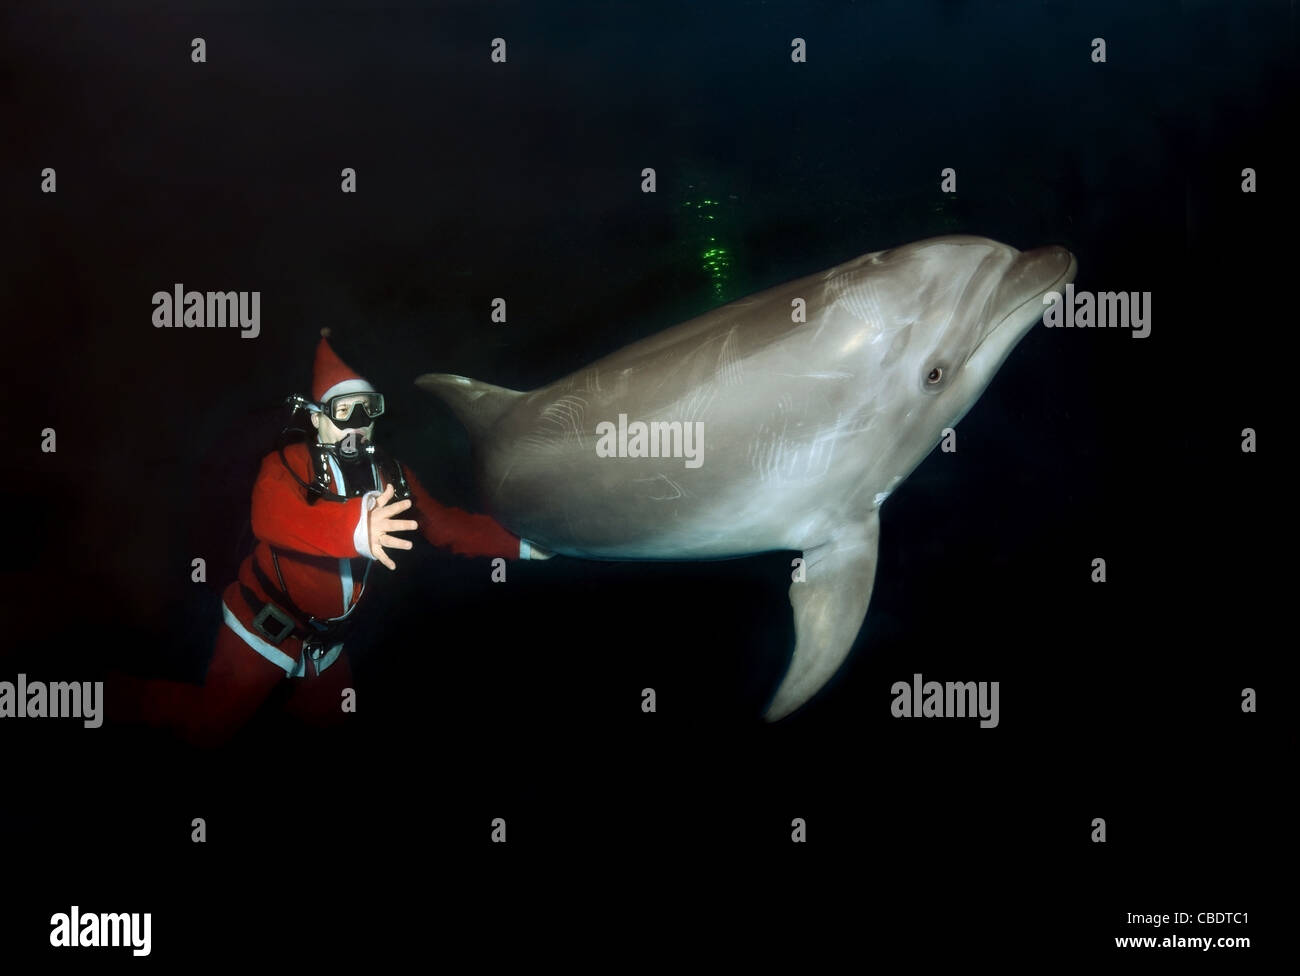 Happy New Year, Dolphin and Santa Claus - bottlenose dolphin, Afalina (Tursiops truncatus) - Stock Image